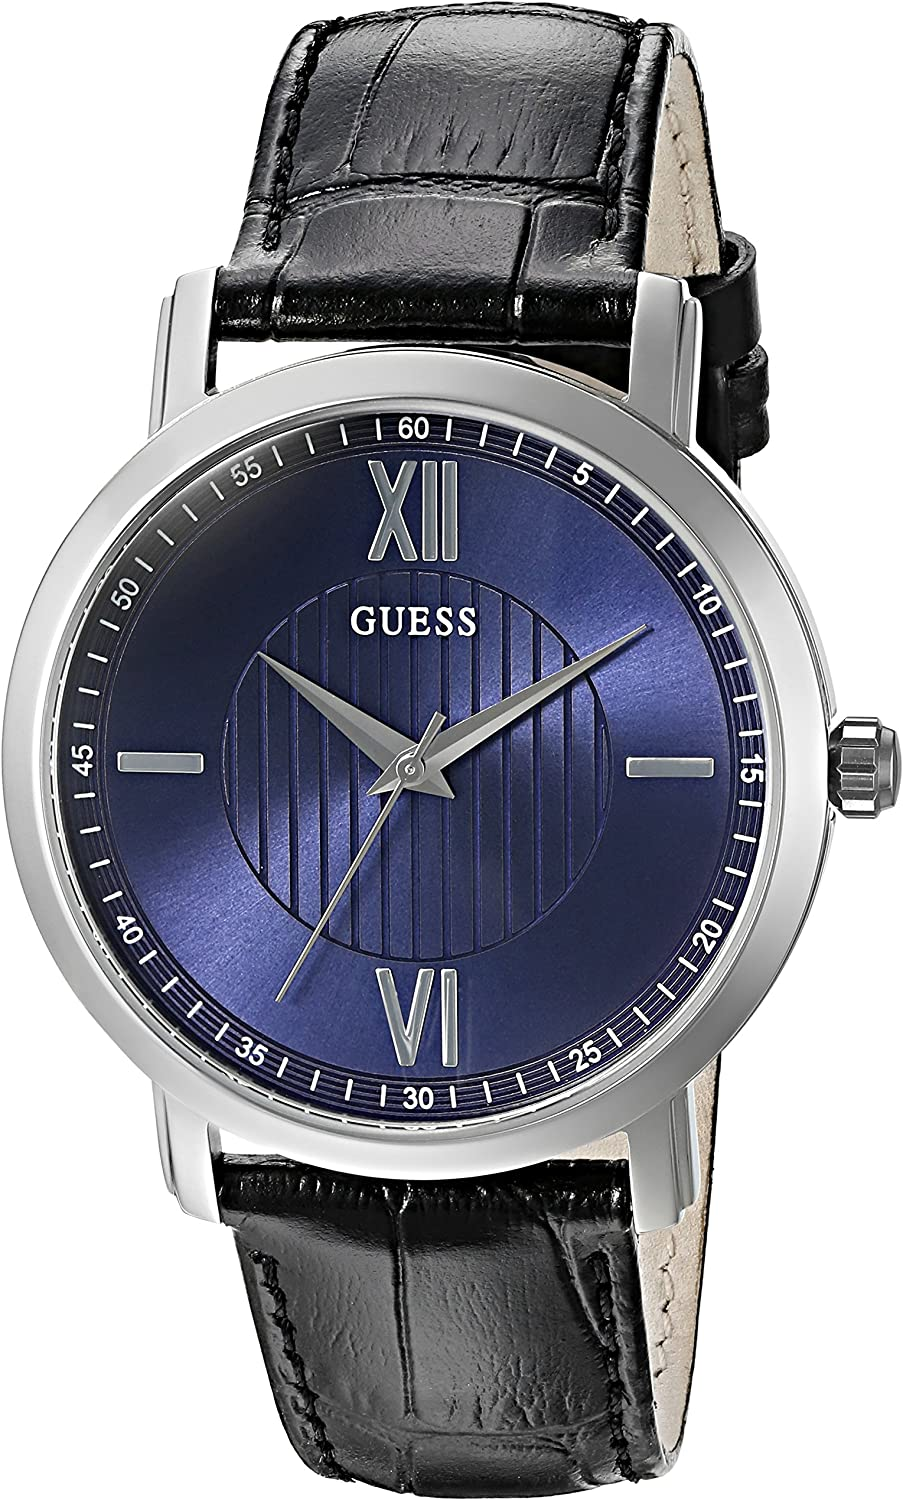 GUESS Men s U0793G2 Diamond Dial Watch with Blue Dial on Black Genuine Leather Strap